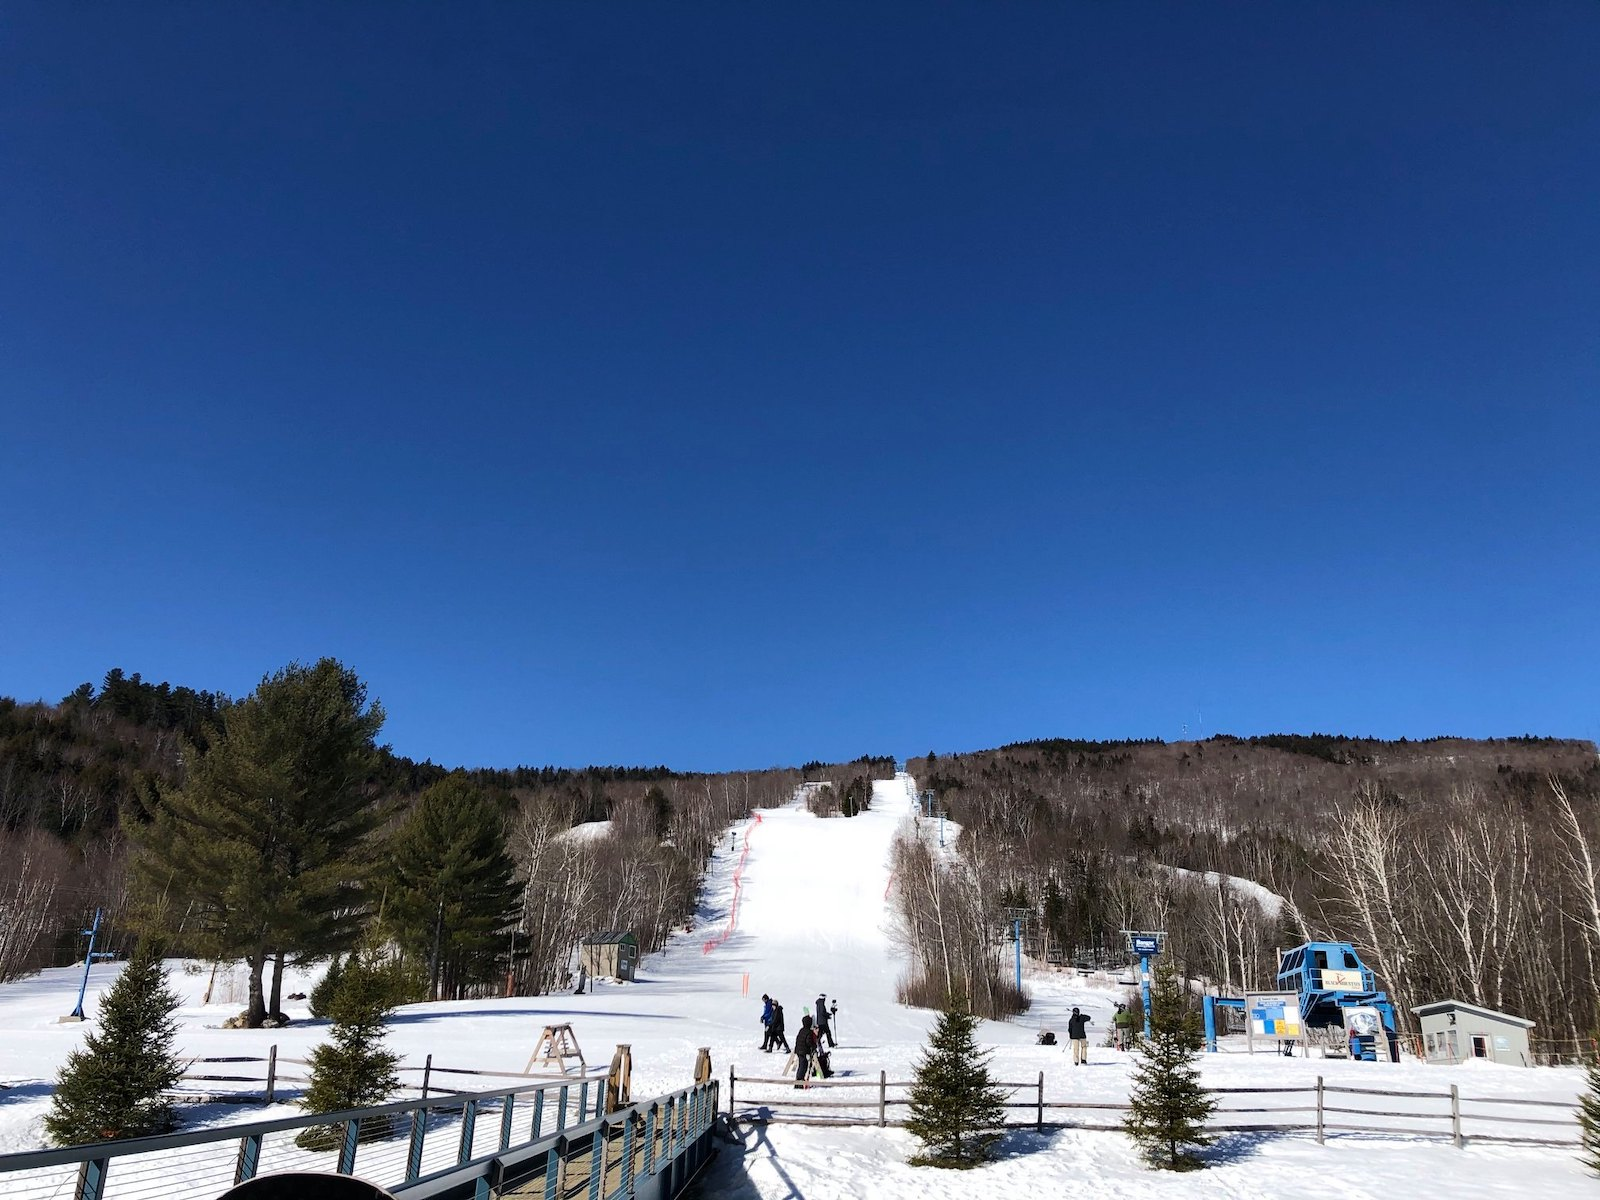 Image of the open slopes at Black Mountain Ski Area in Maine